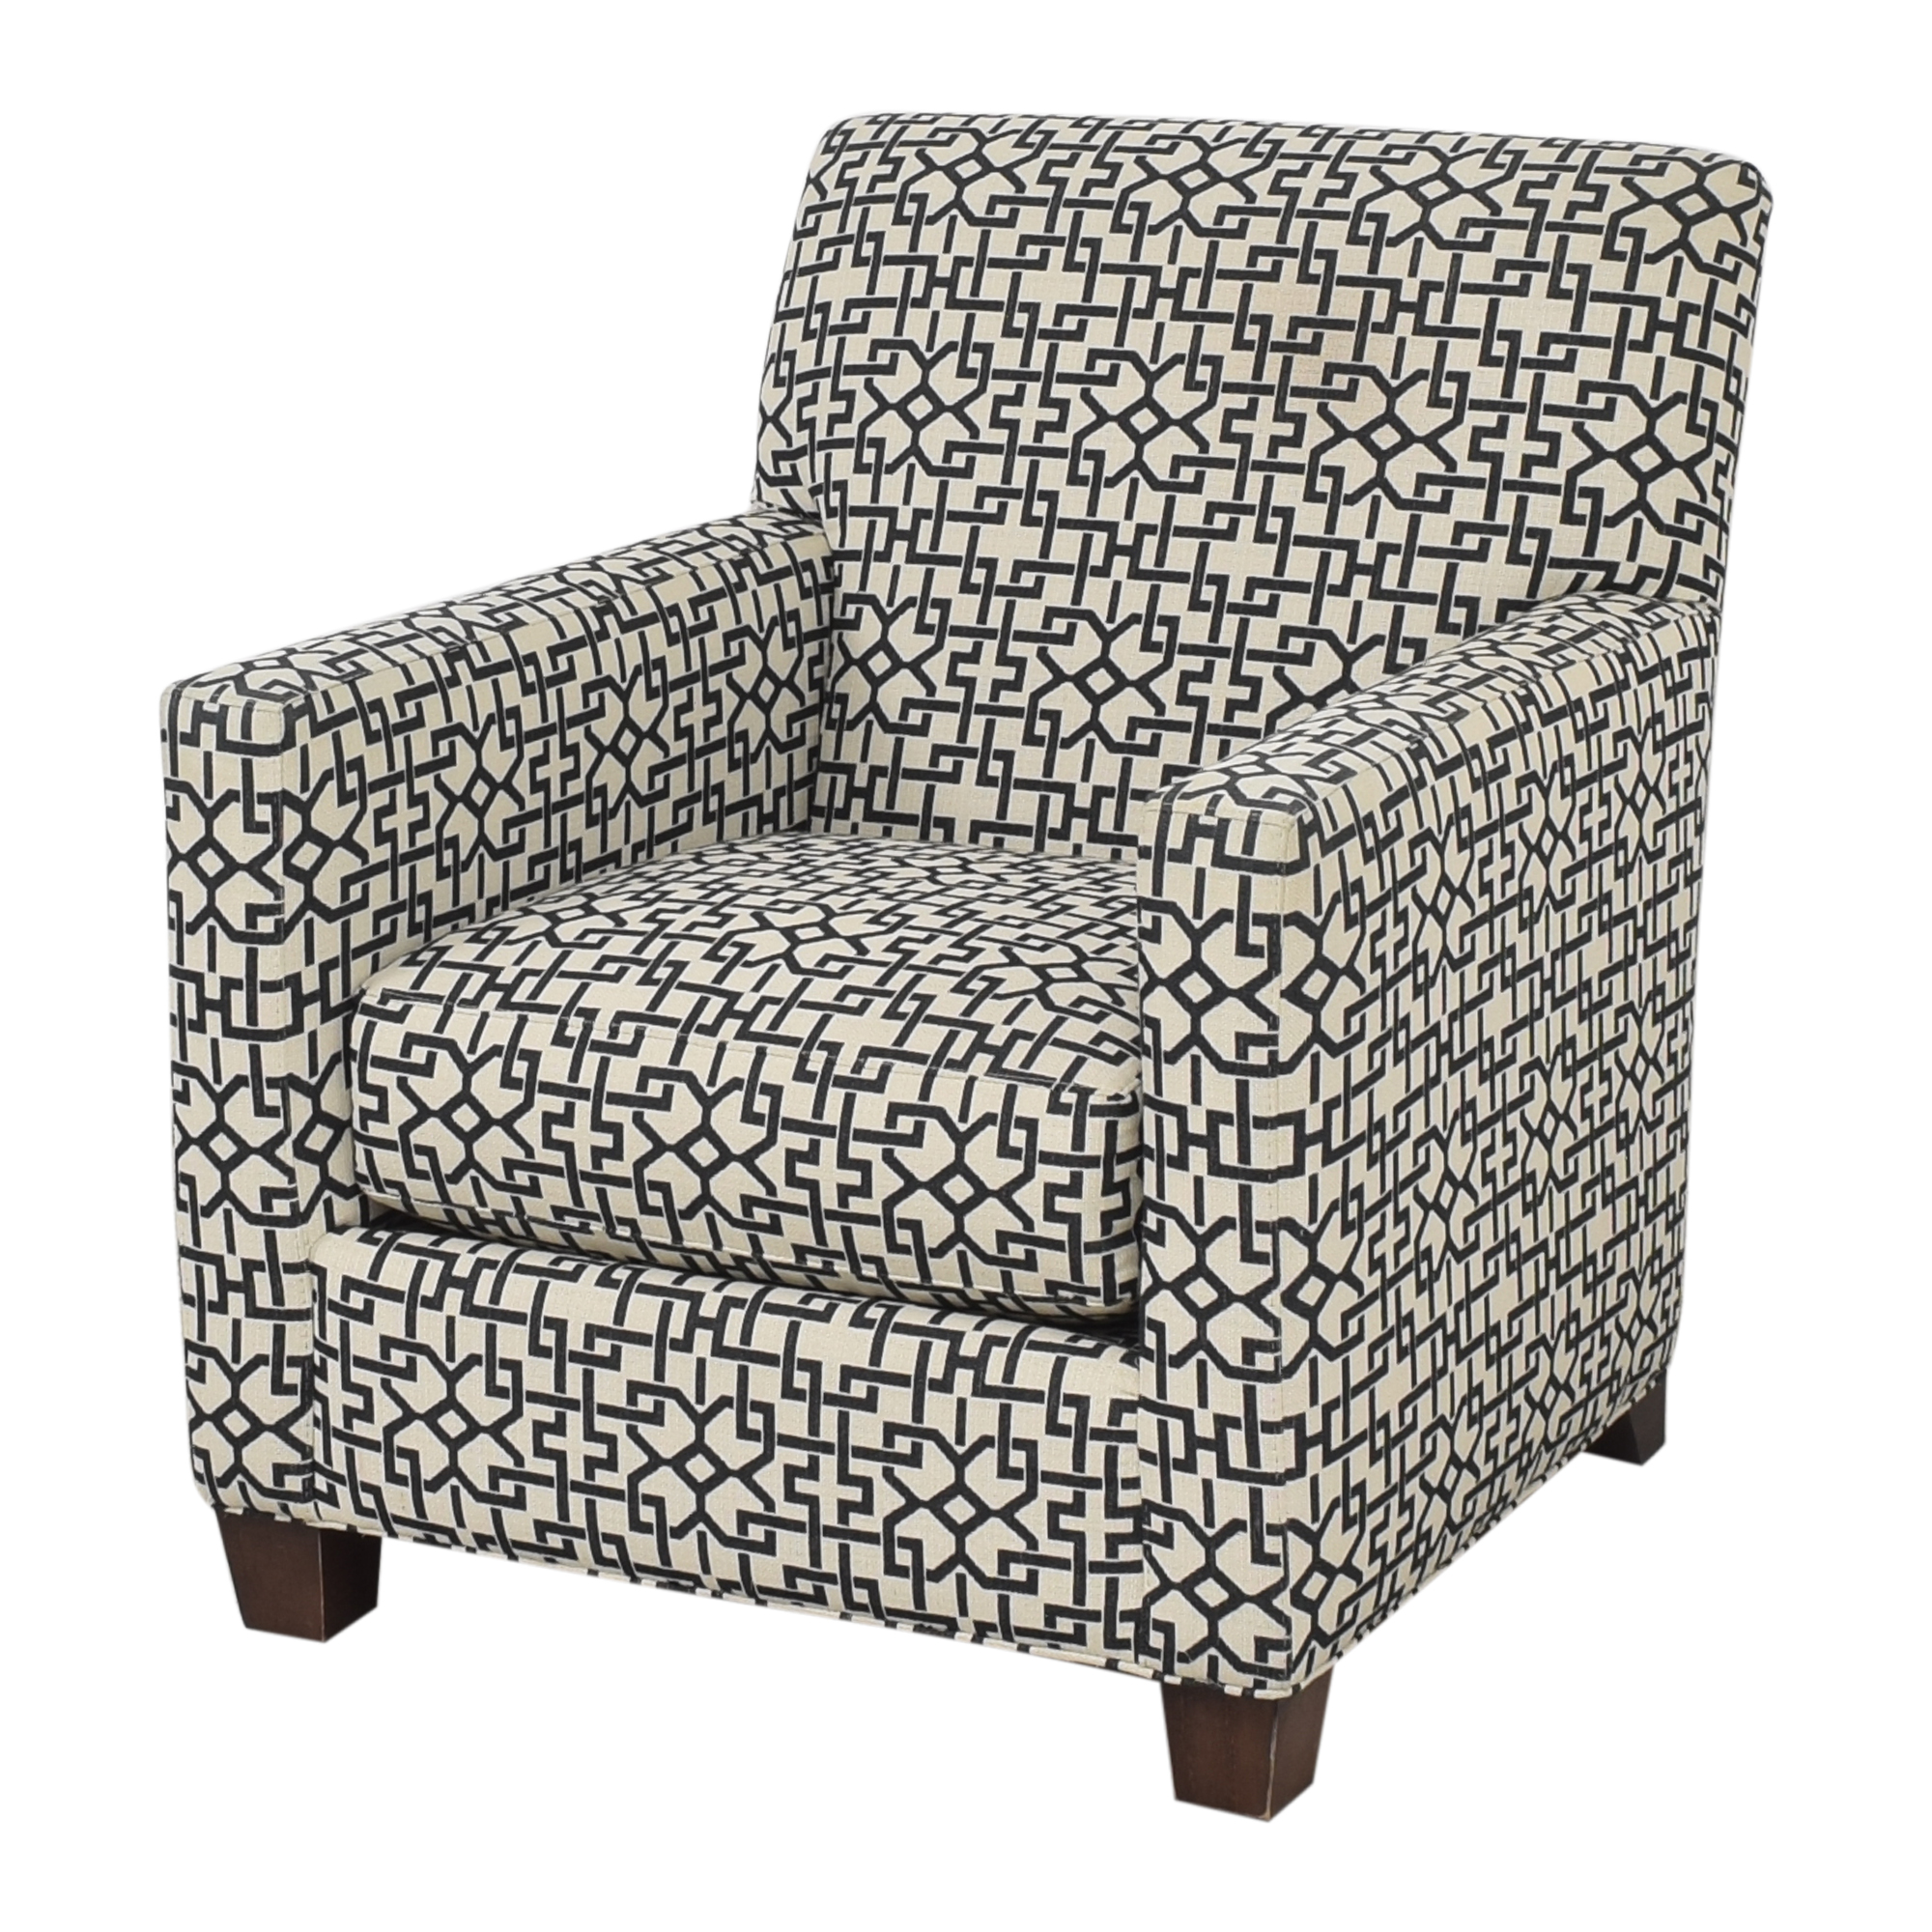 buy Crate & Barrel Geometric Club Chair Crate & Barrel Accent Chairs